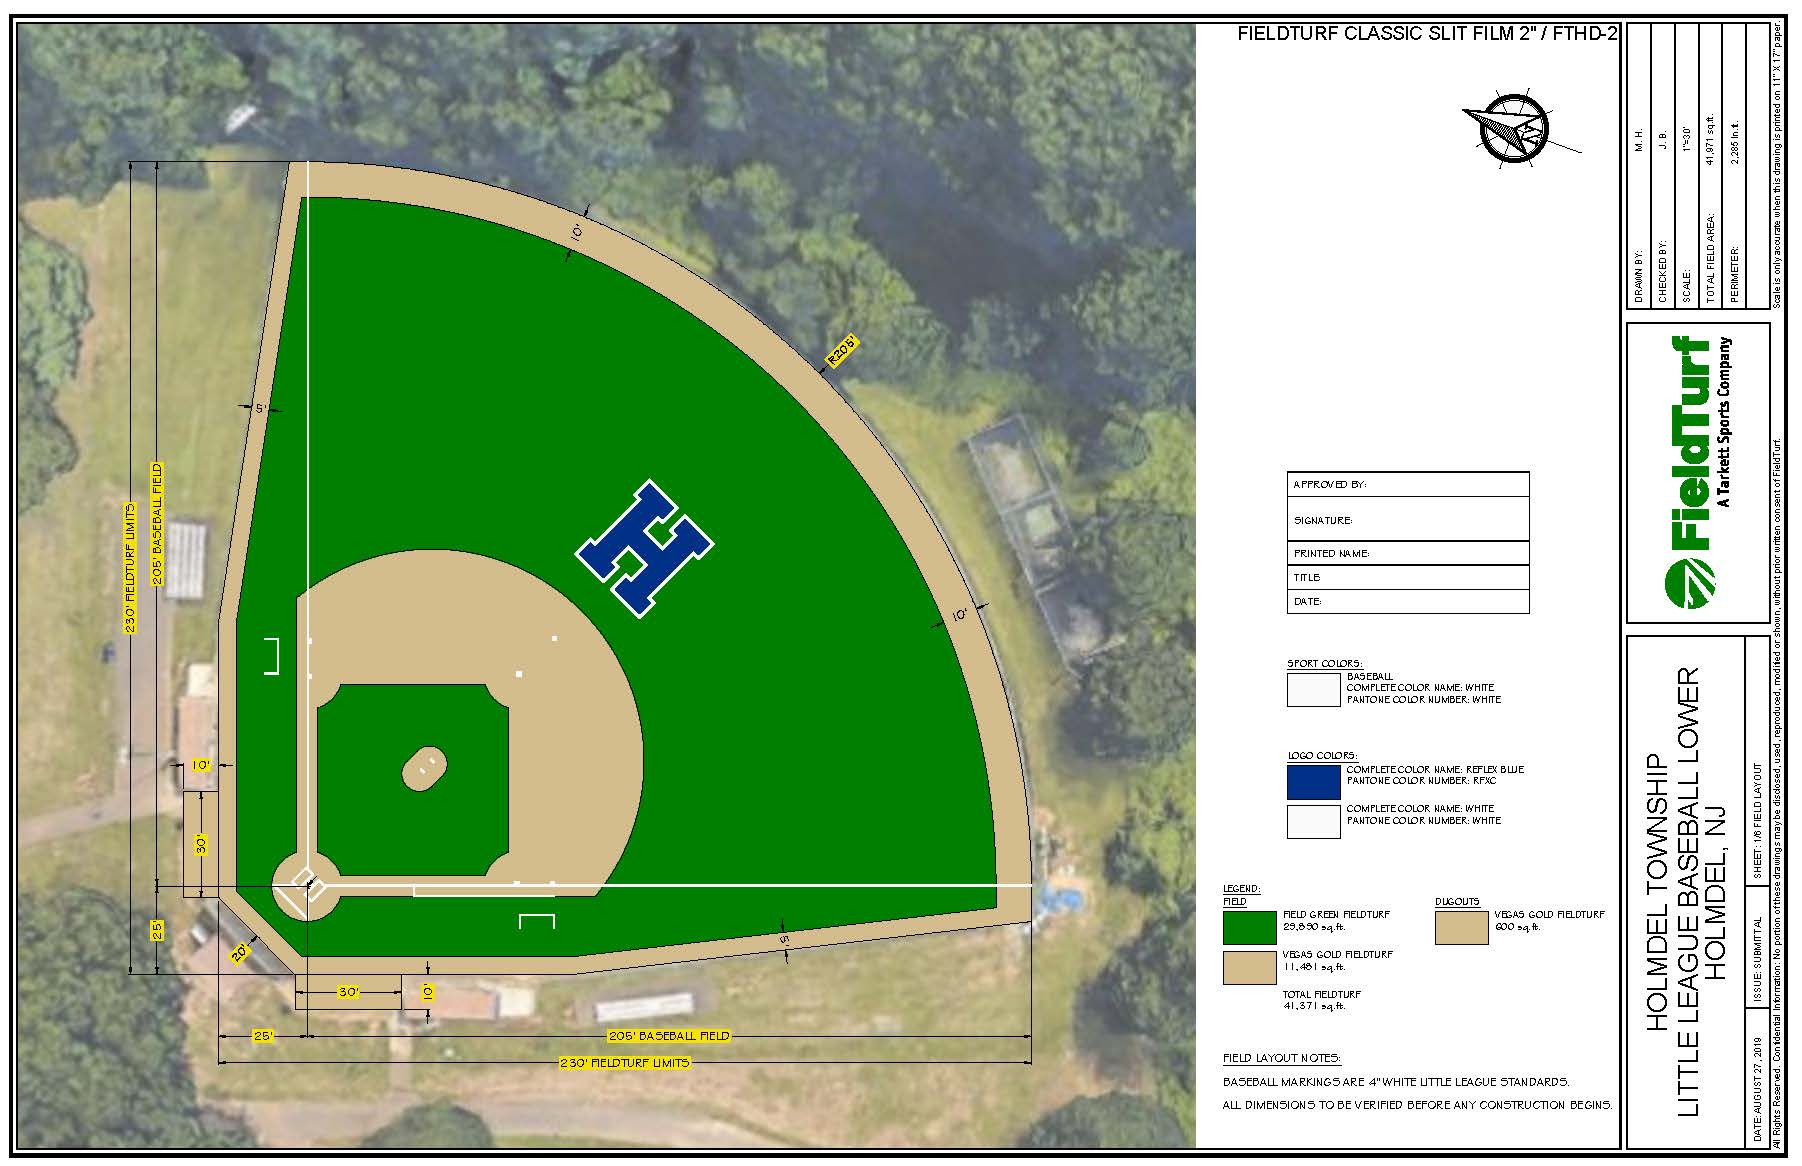 Holmdel Township Little League Baseball Lower - FULL SUBMITTAL - 0001851..__Page_2